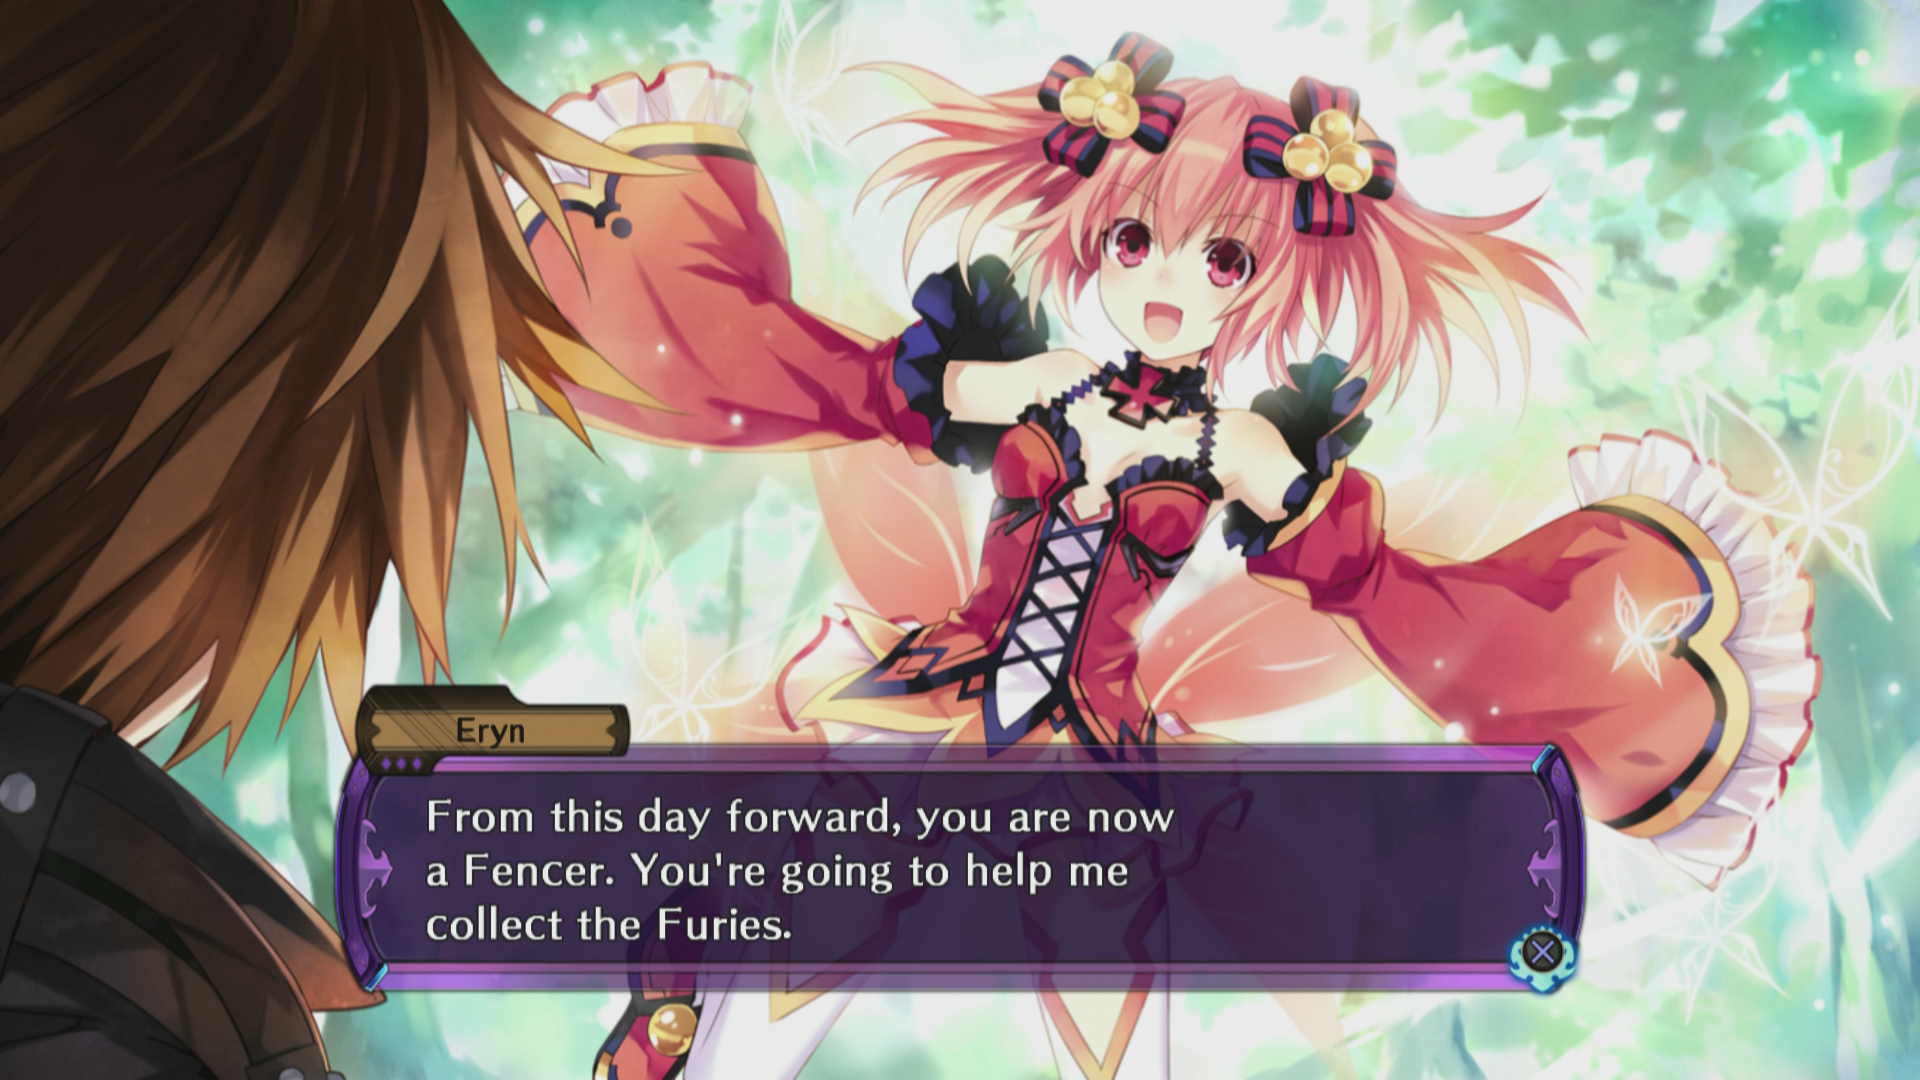 Fairy Fencer F and Hyperdimension Neptunia to Be Launched in English_Haruhichan.com-on Steam-Fairy-Fencer-F_2